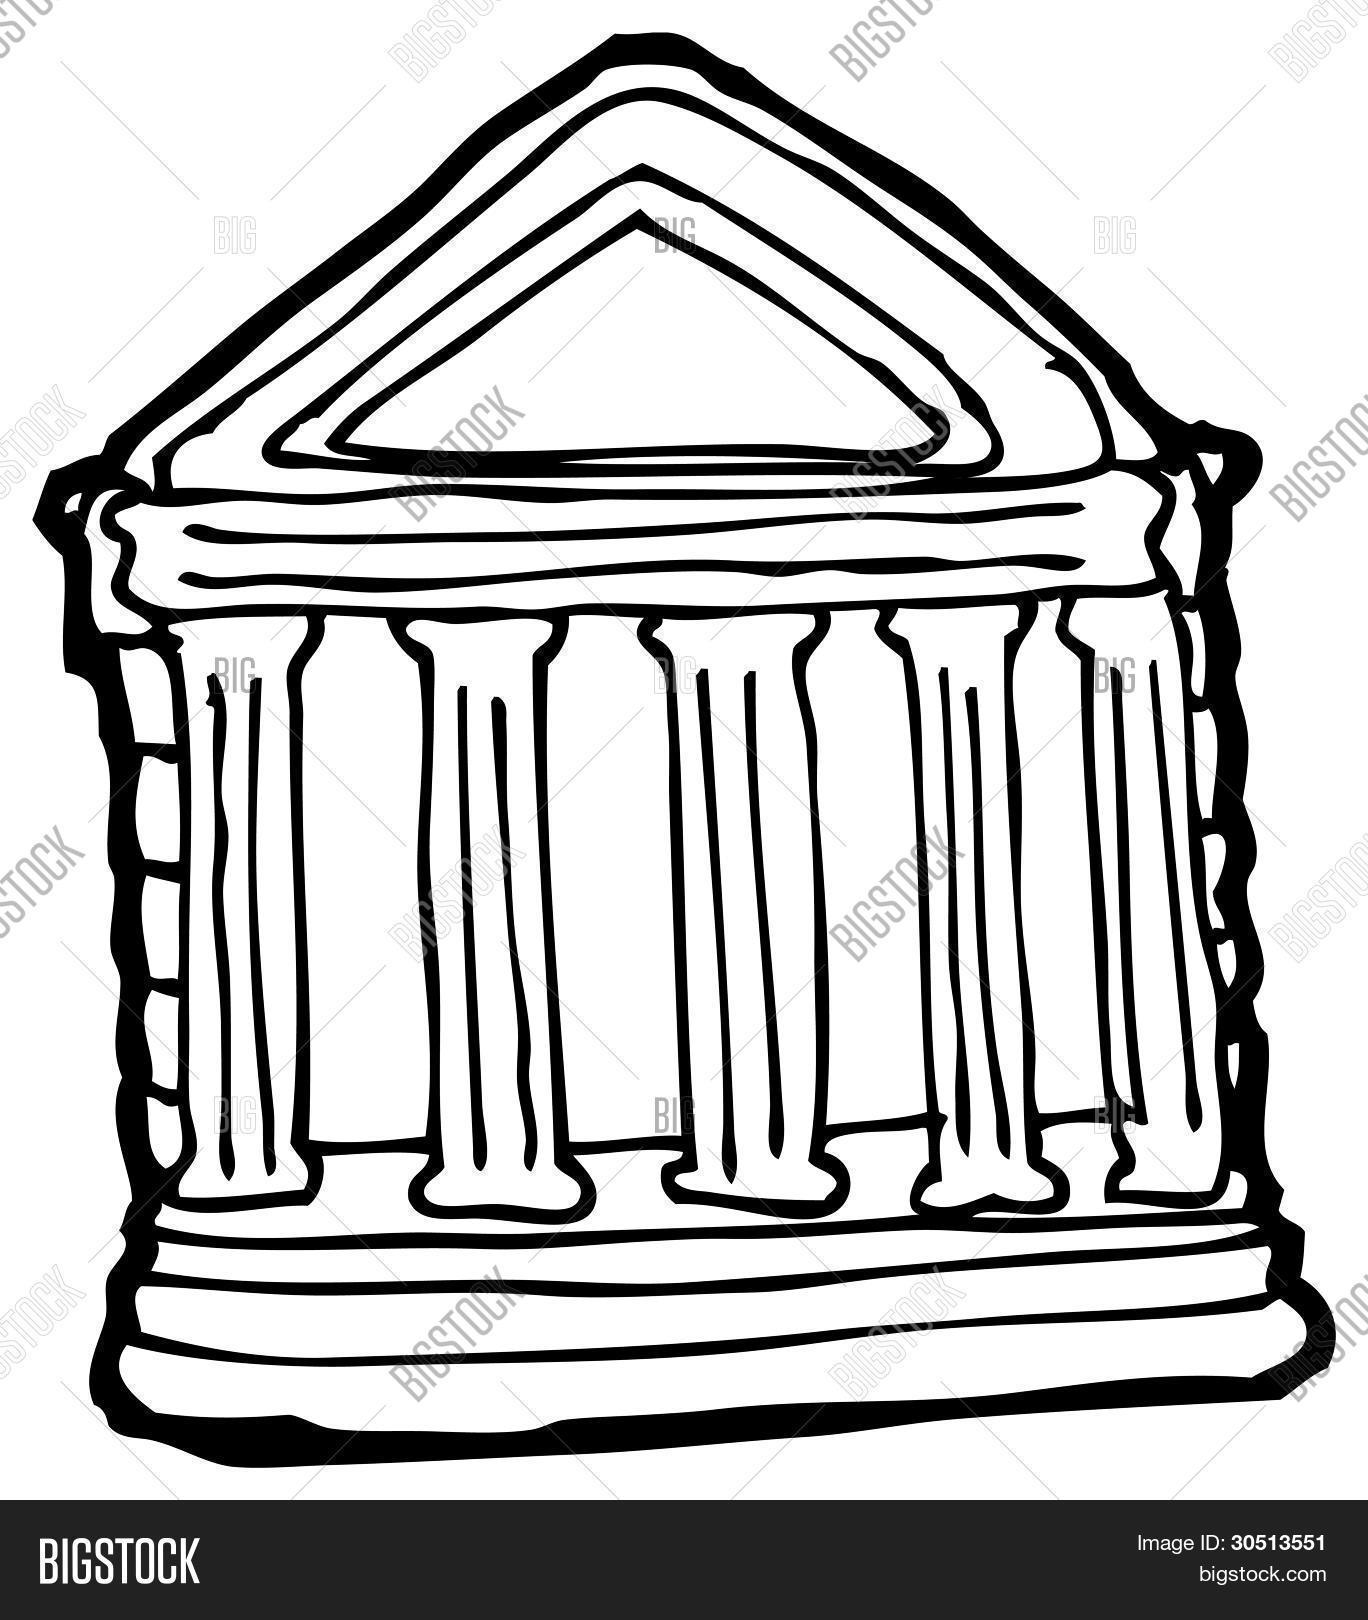 roman pillars drawing at getdrawings com